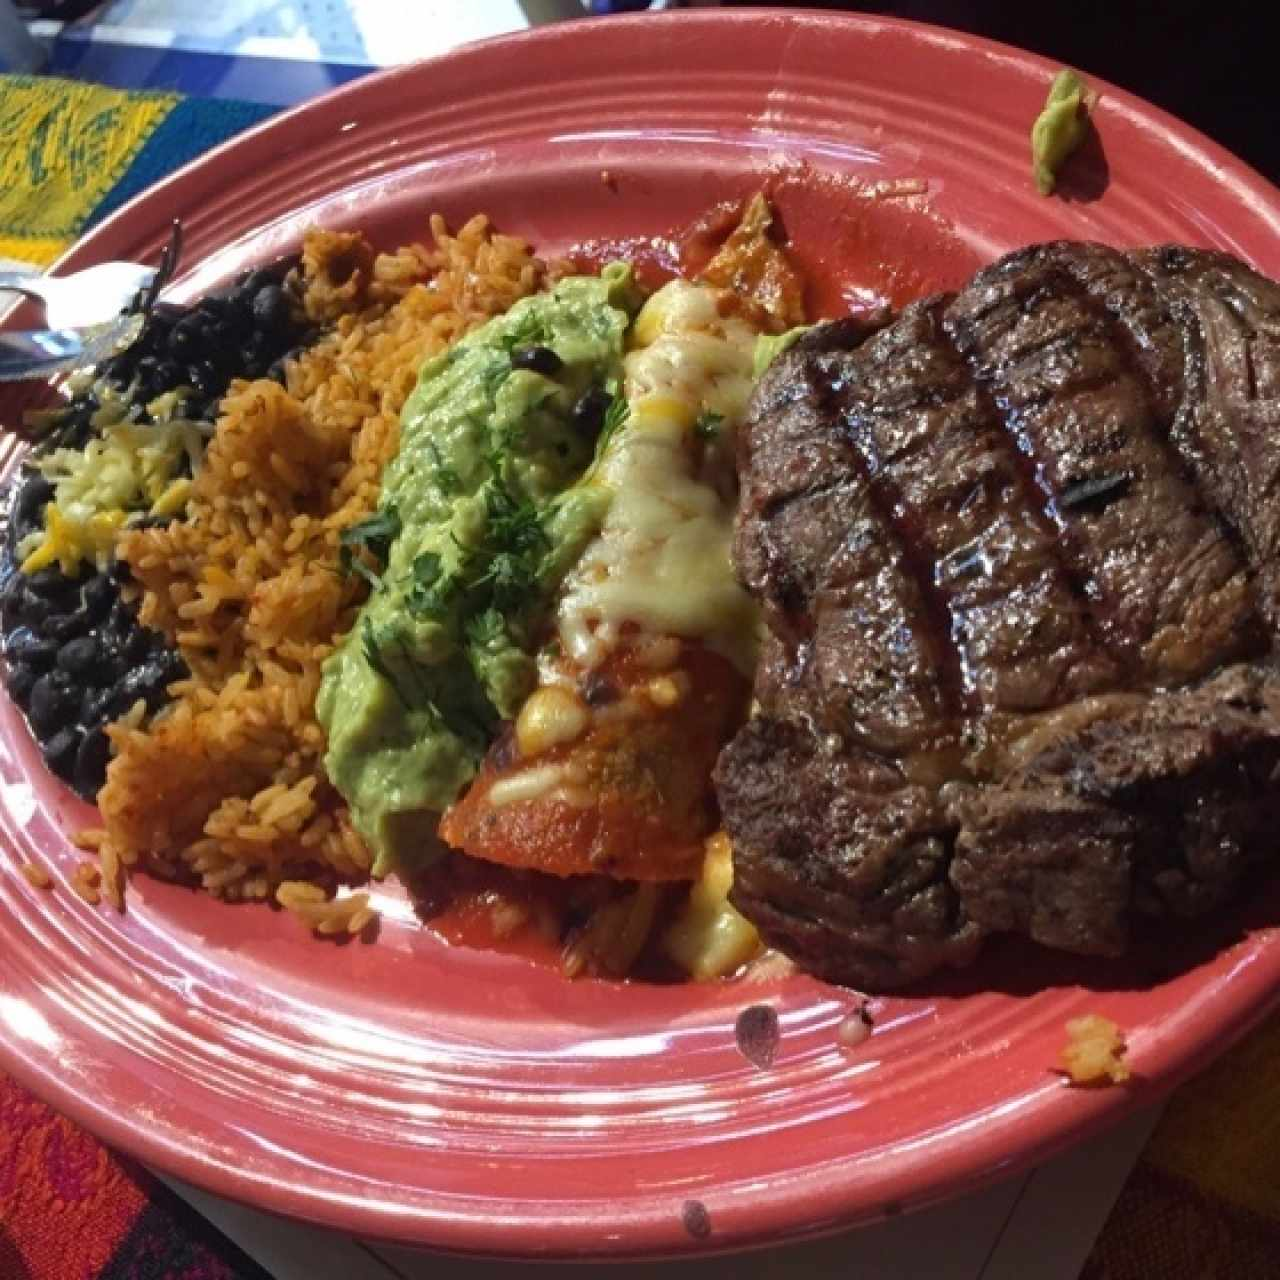 Tampiqueña Steak